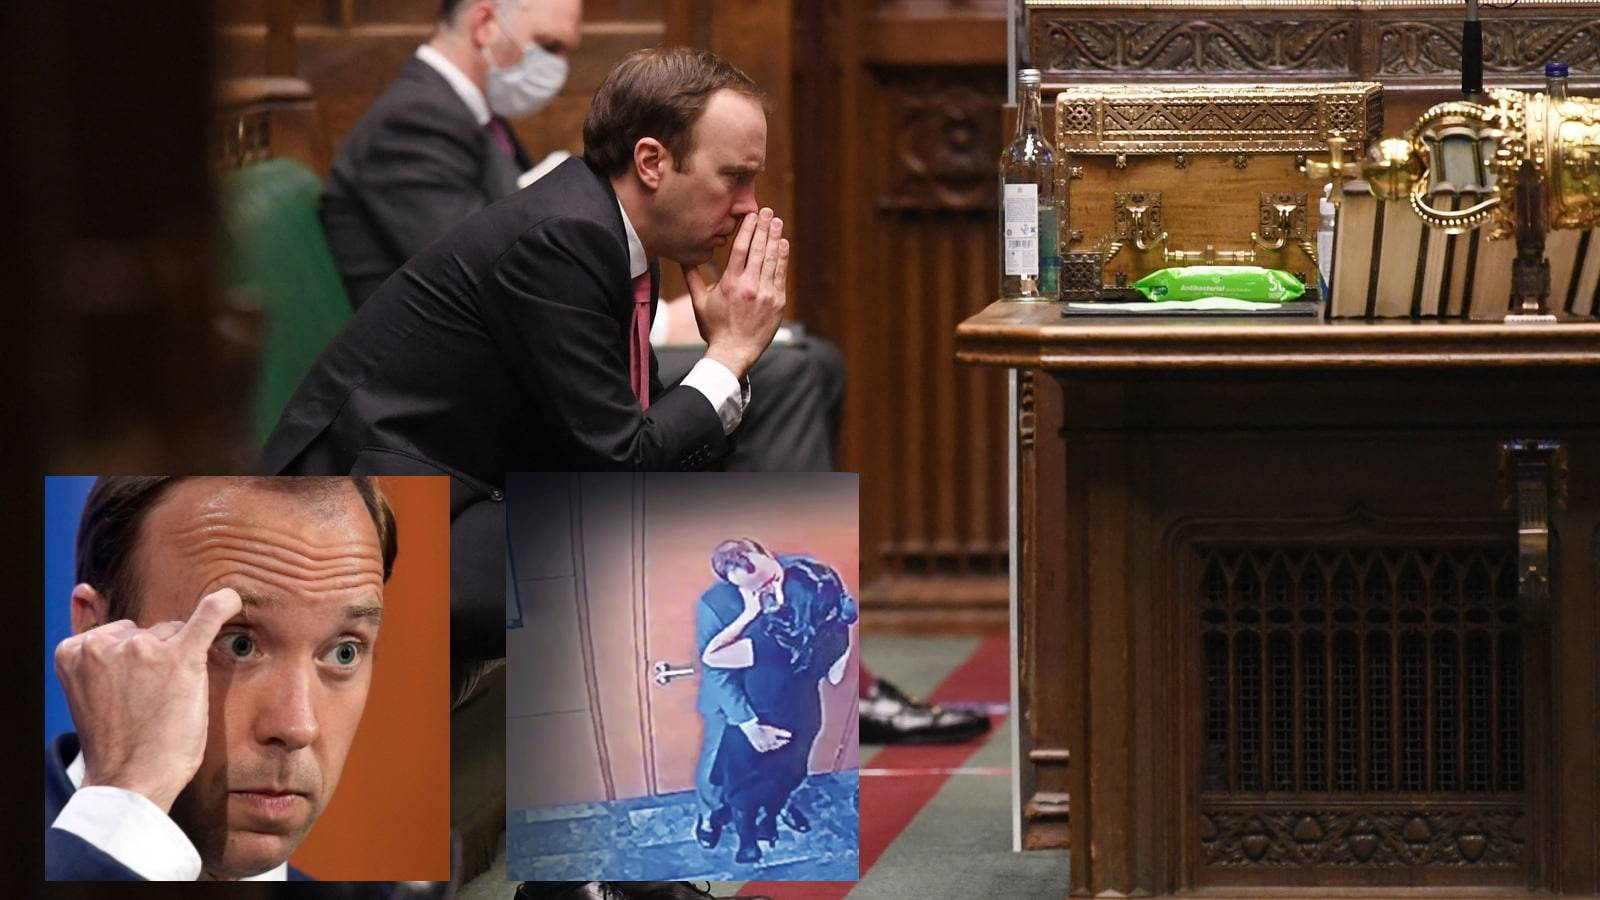 Image about UK Health minister kissing aide during Covid-19 pandemic